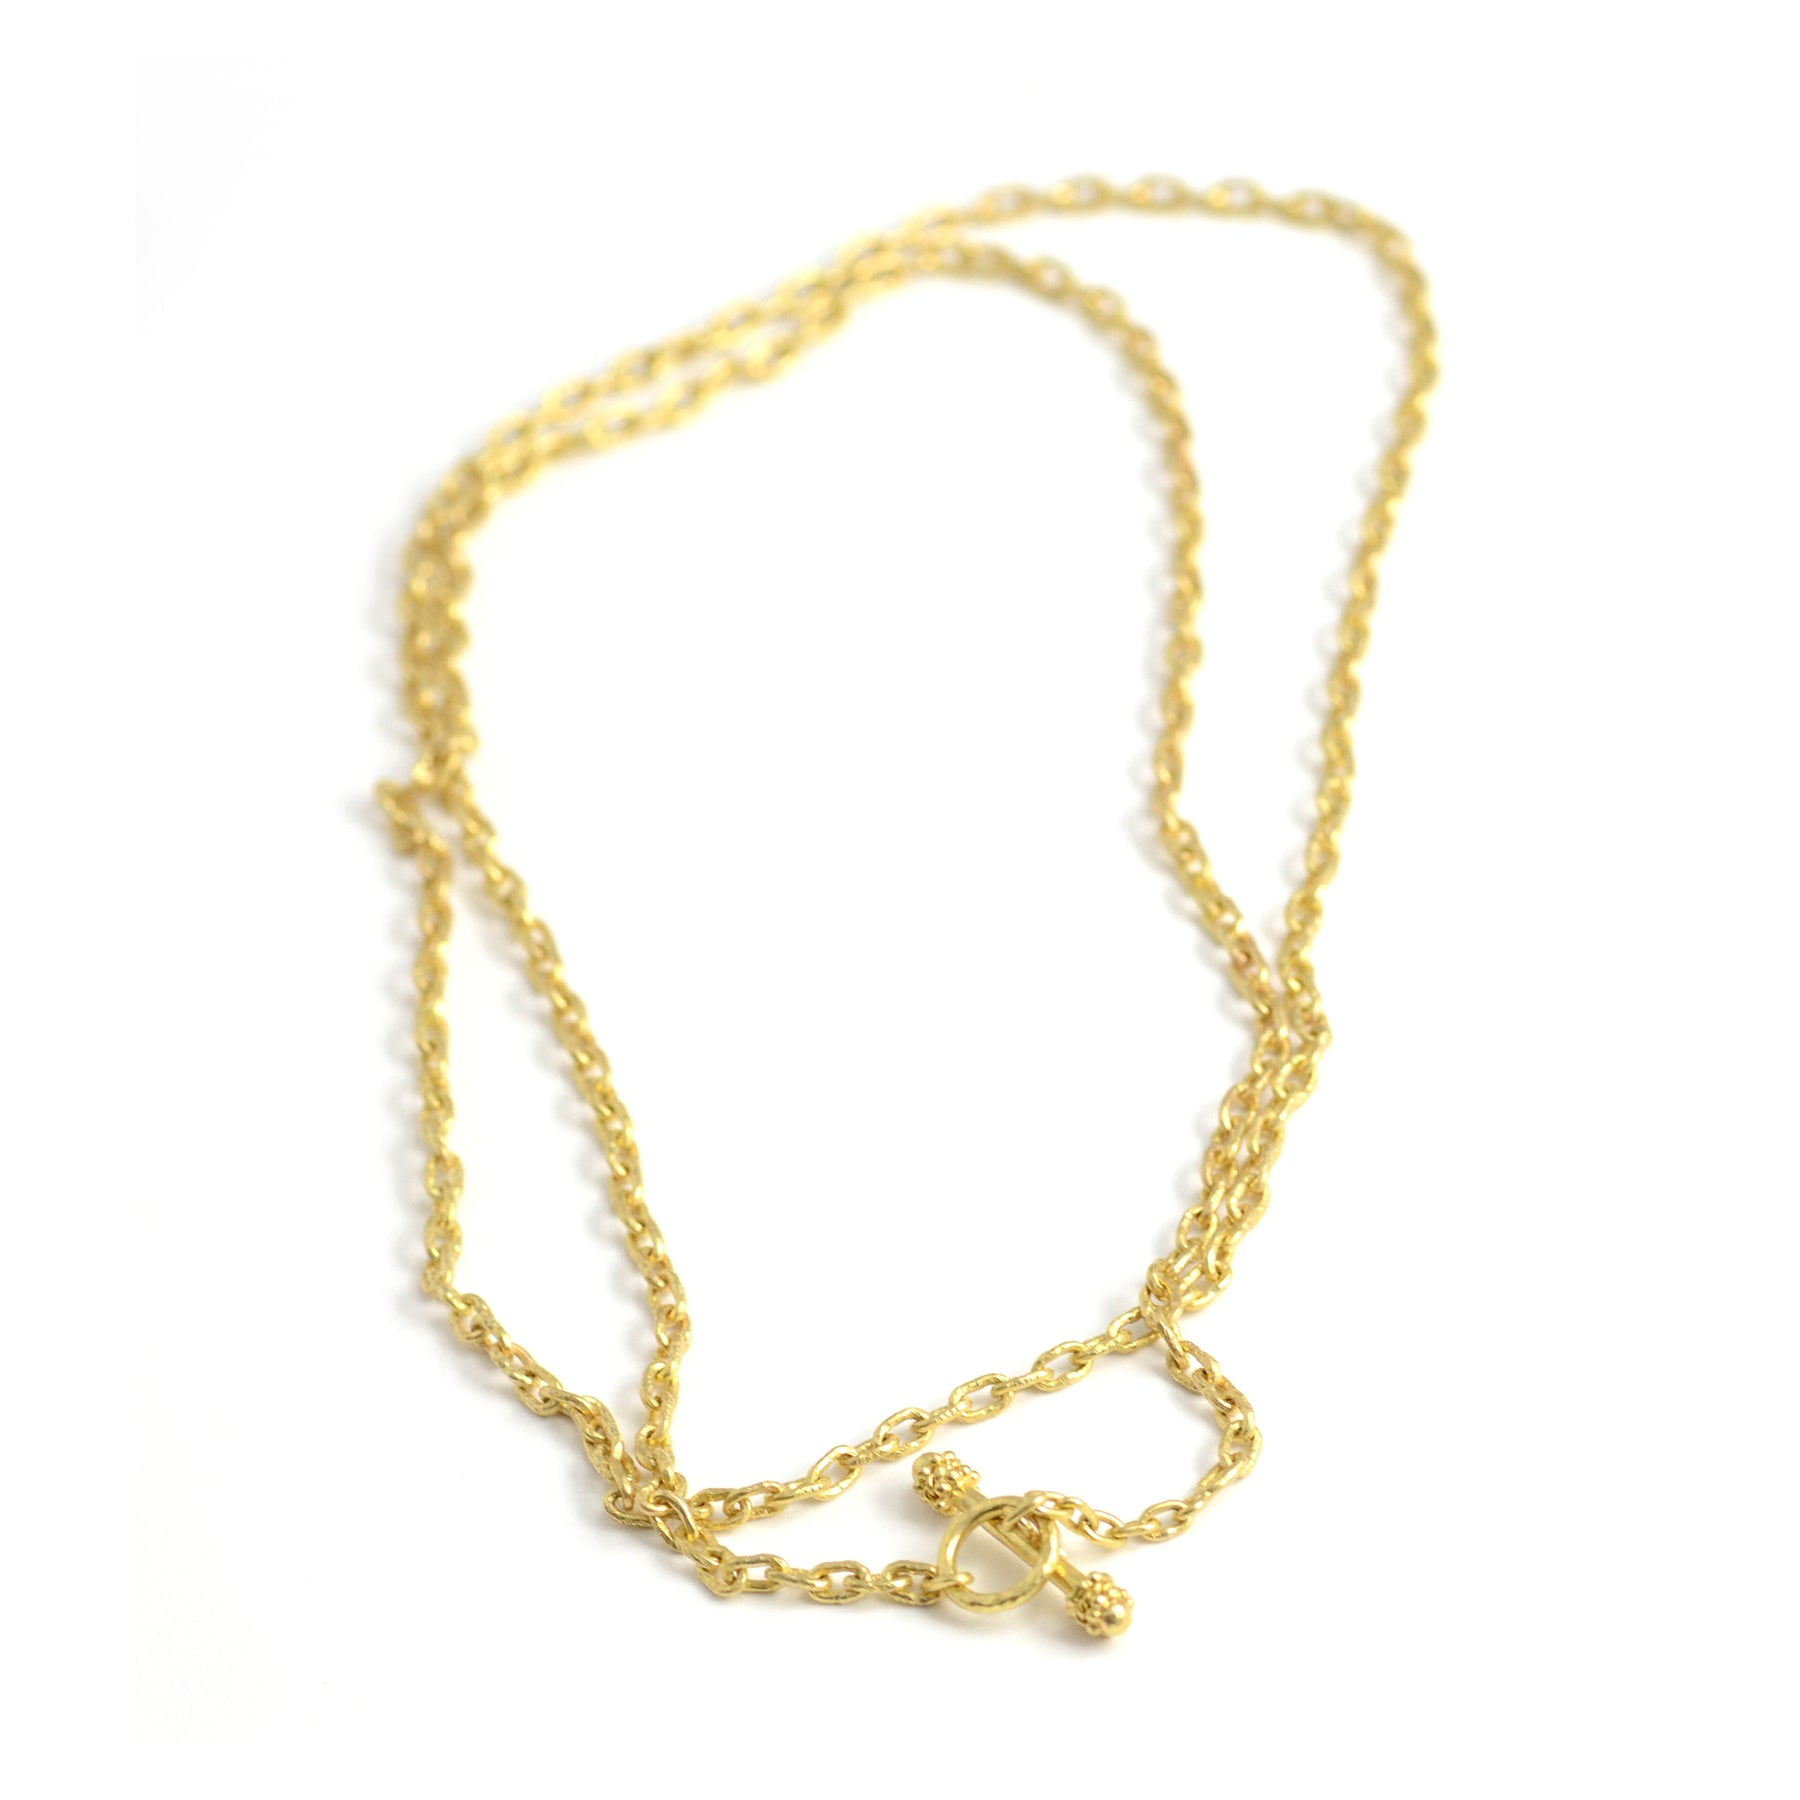 "Elizabeth Locke Jewels handmade gold chain 35"" length"